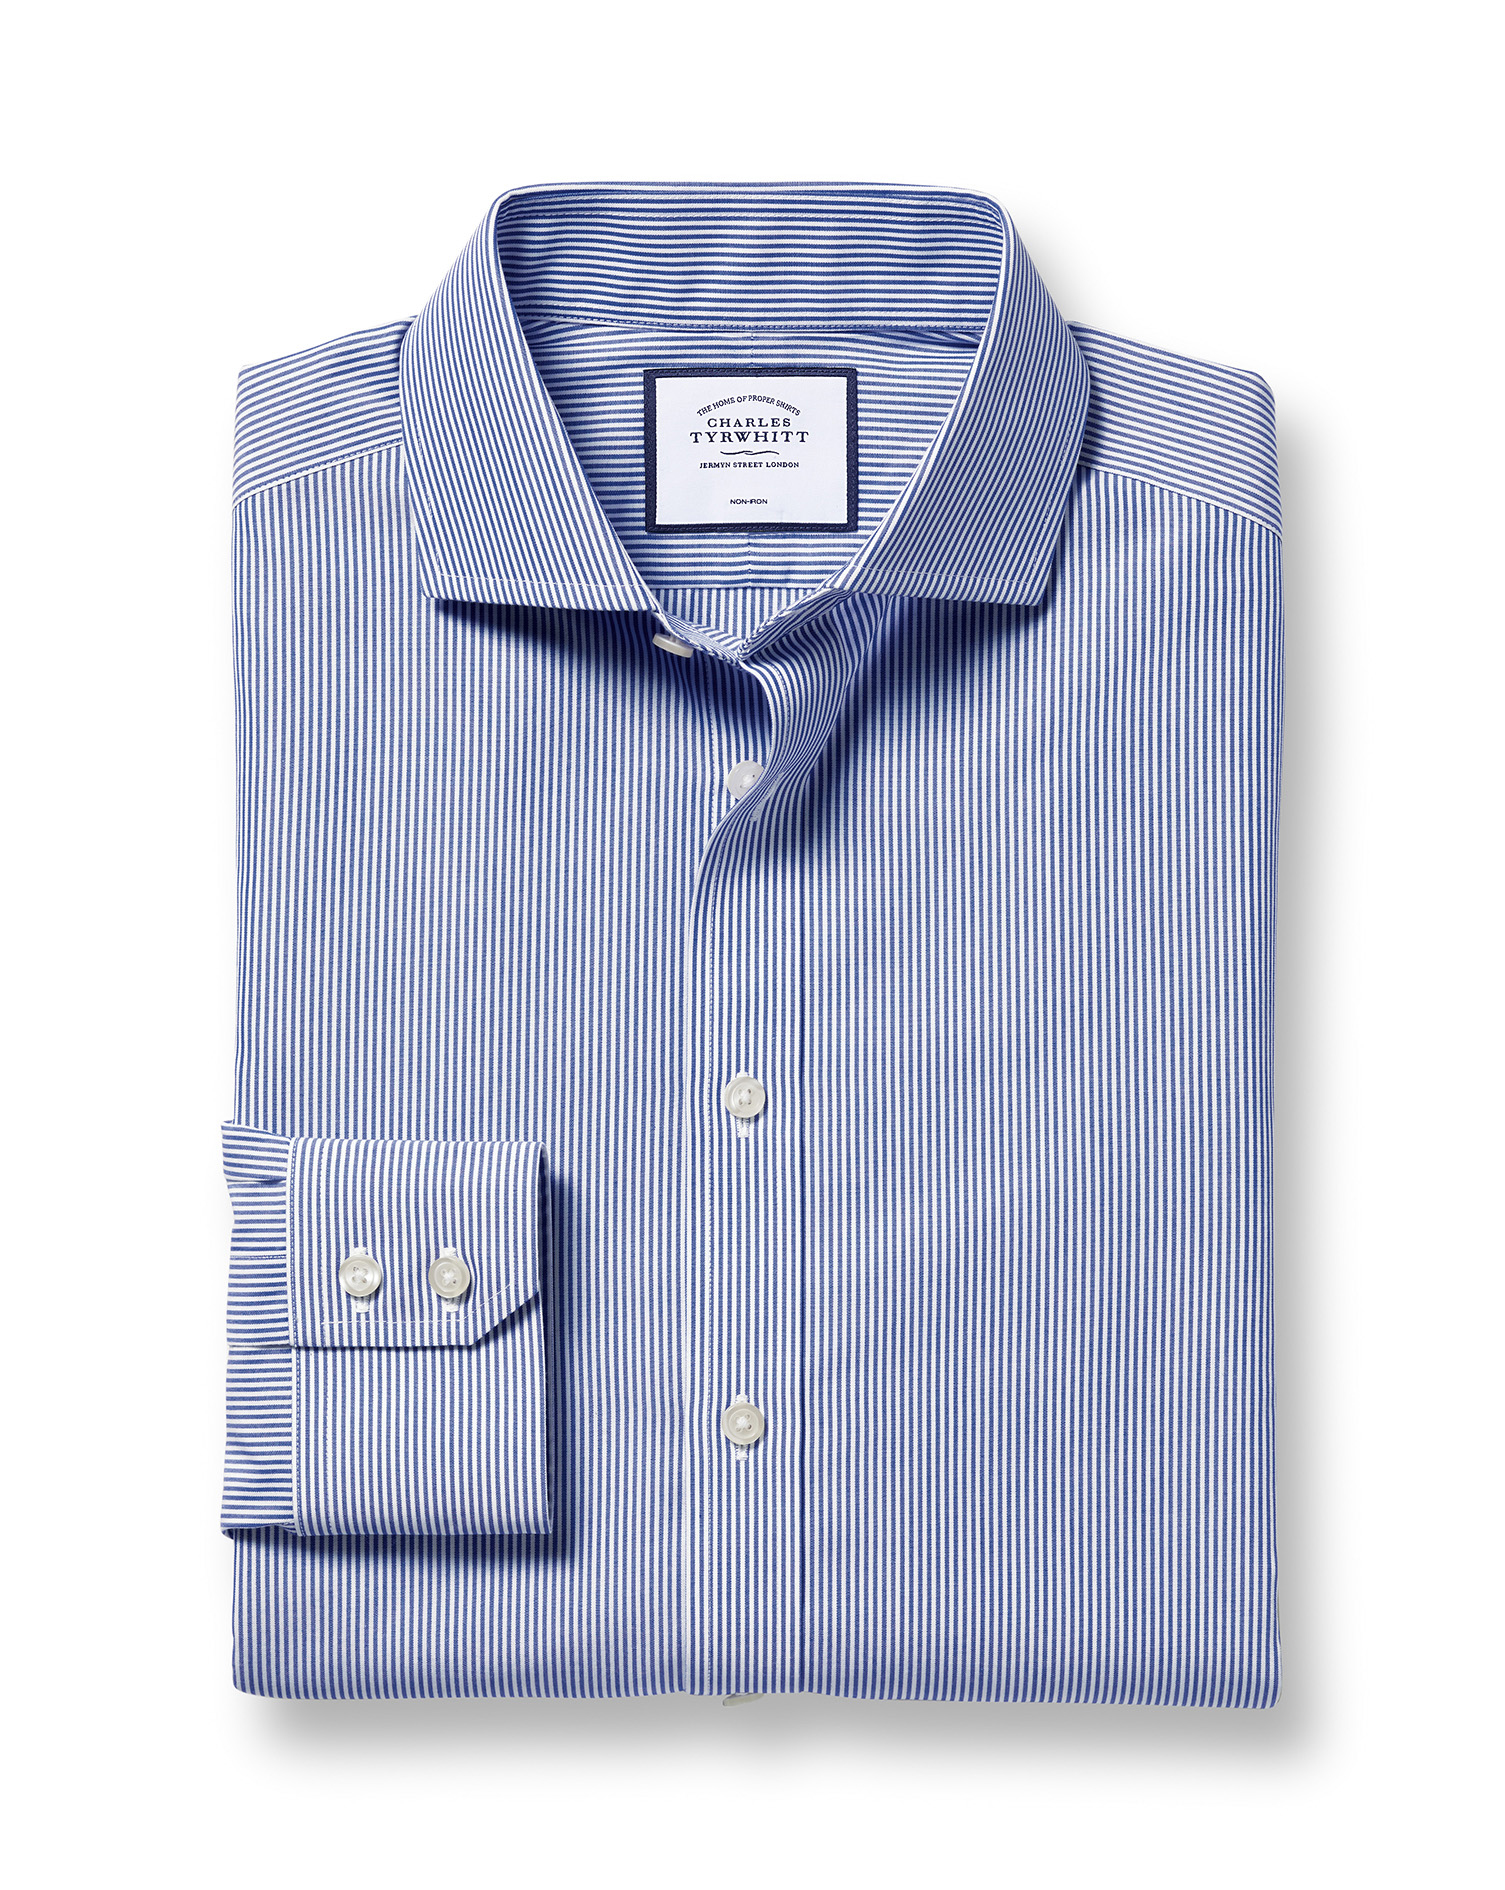 Extra Slim Fit Cutaway Non-Iron Bengal Stripe Navy Cotton Formal Shirt Double Cuff Size 15.5/33 by C